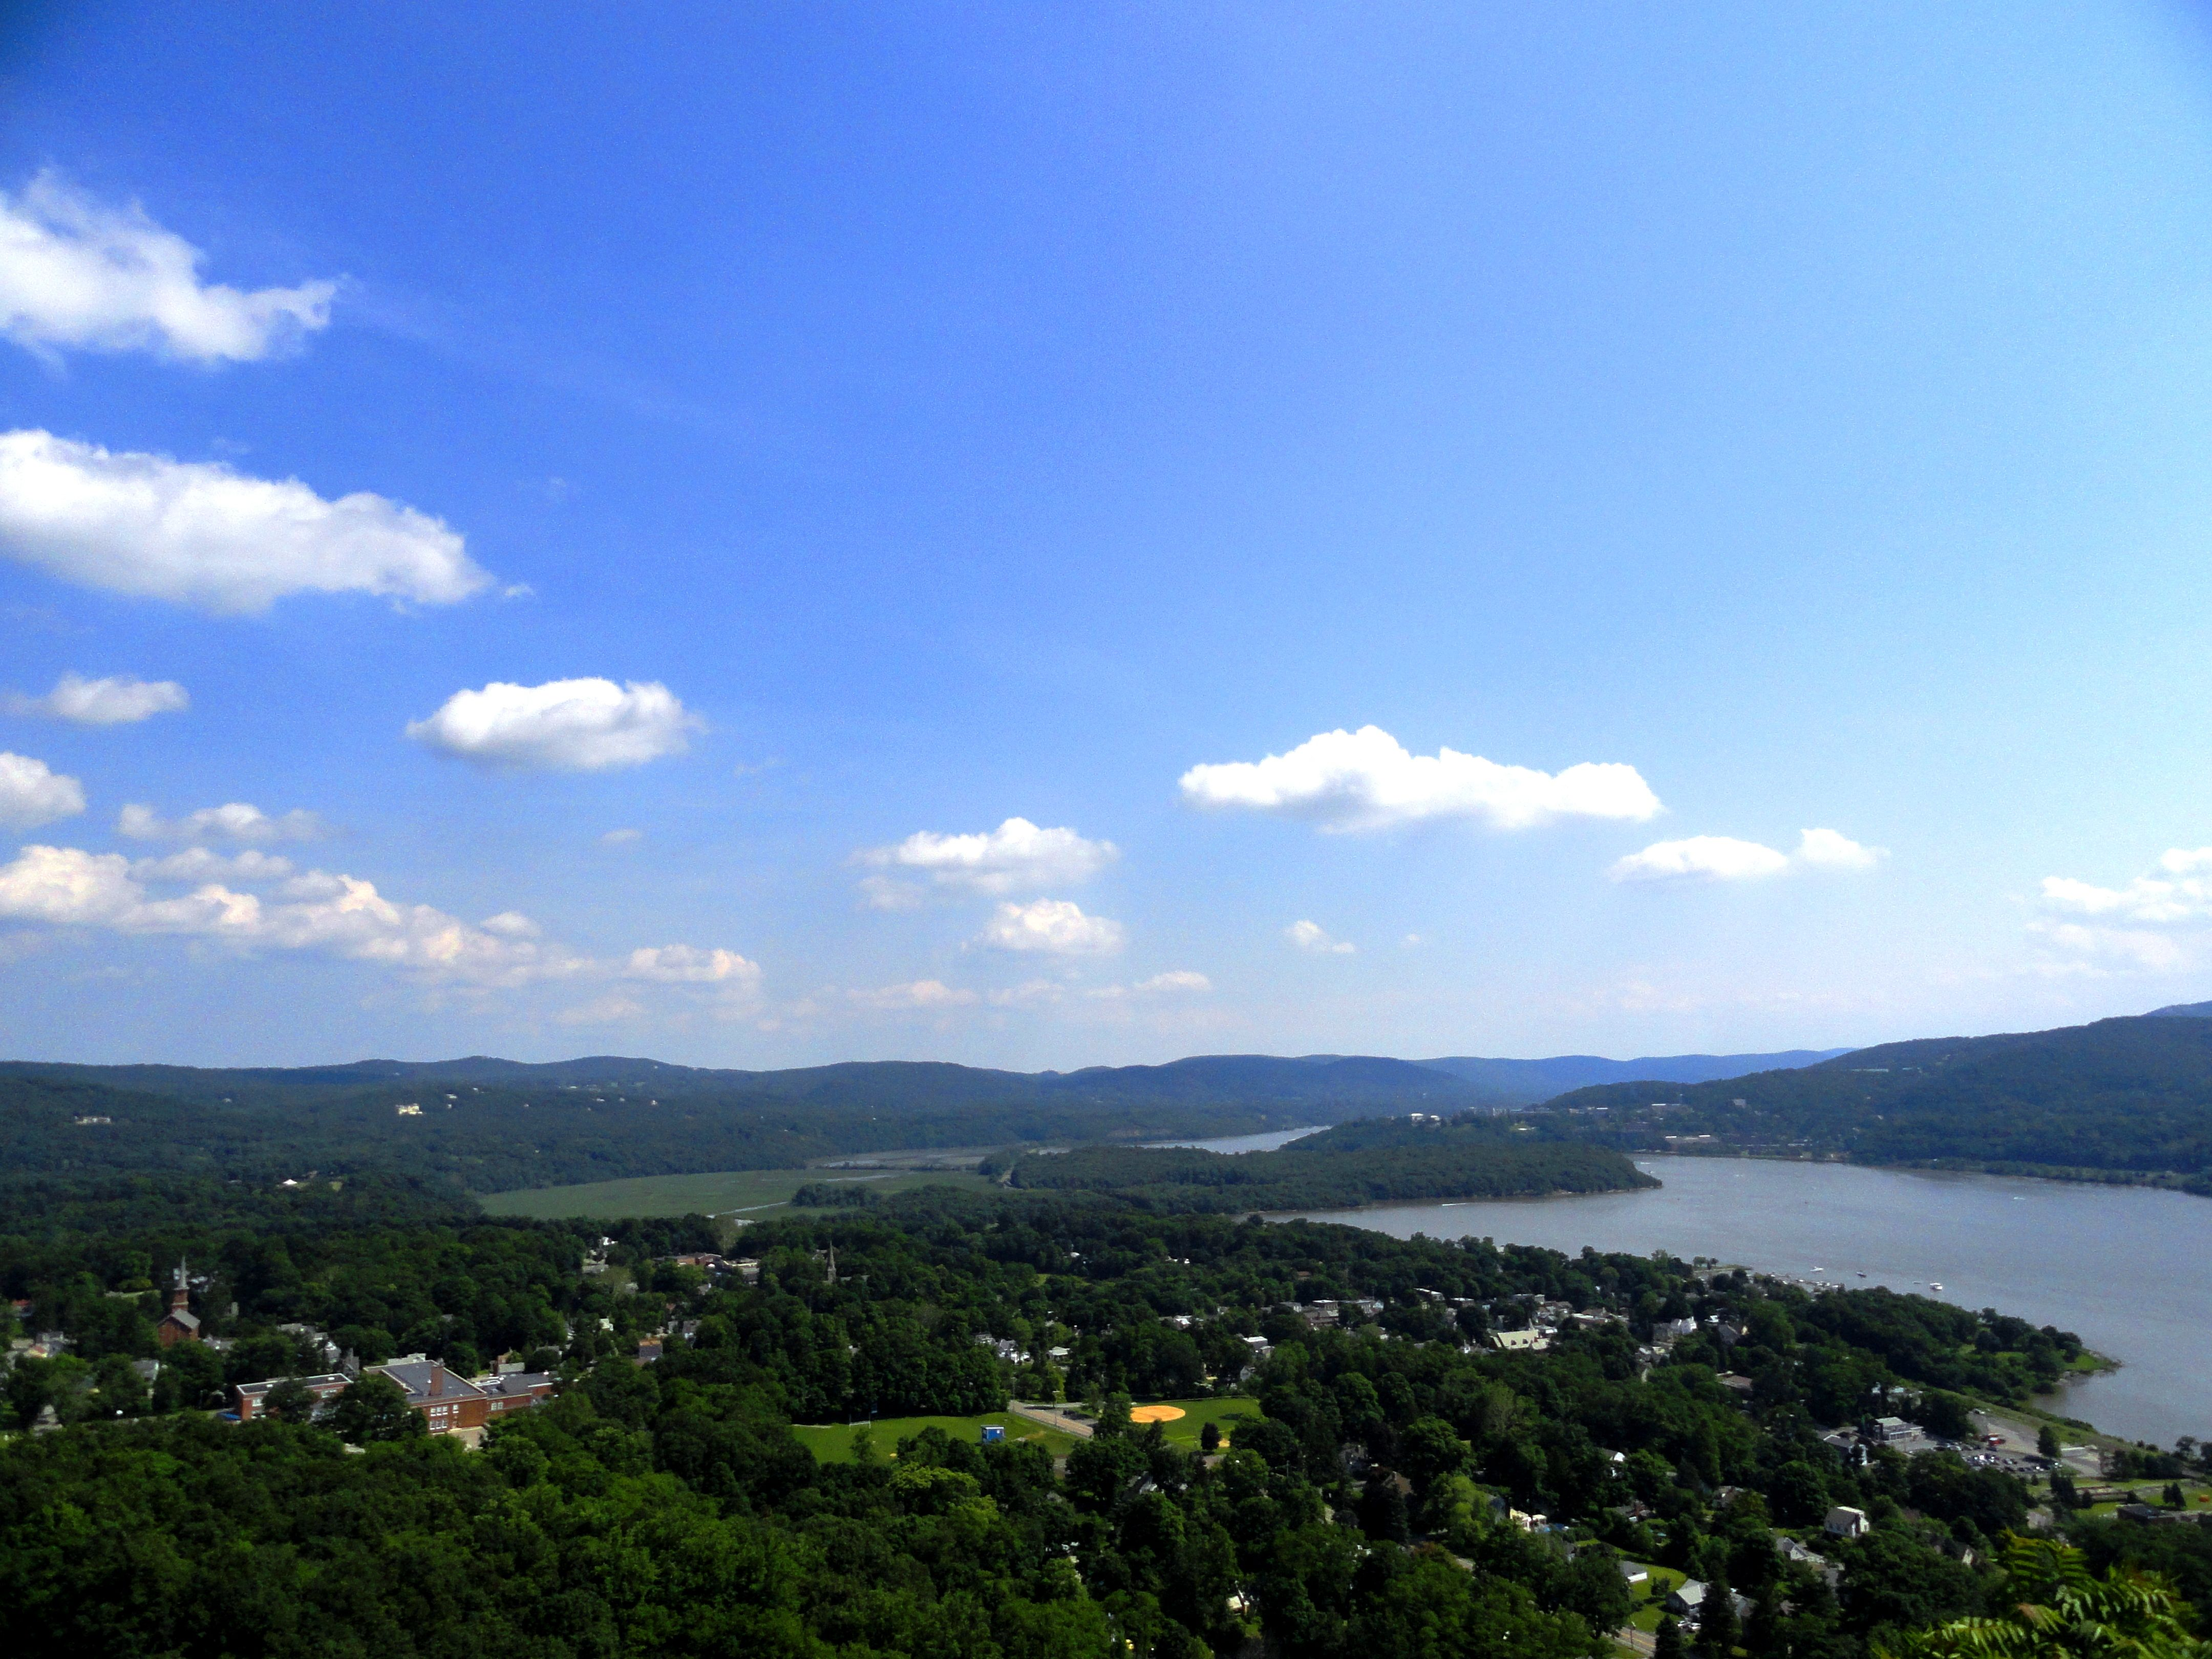 Weekend Escape to Cold Spring, New York